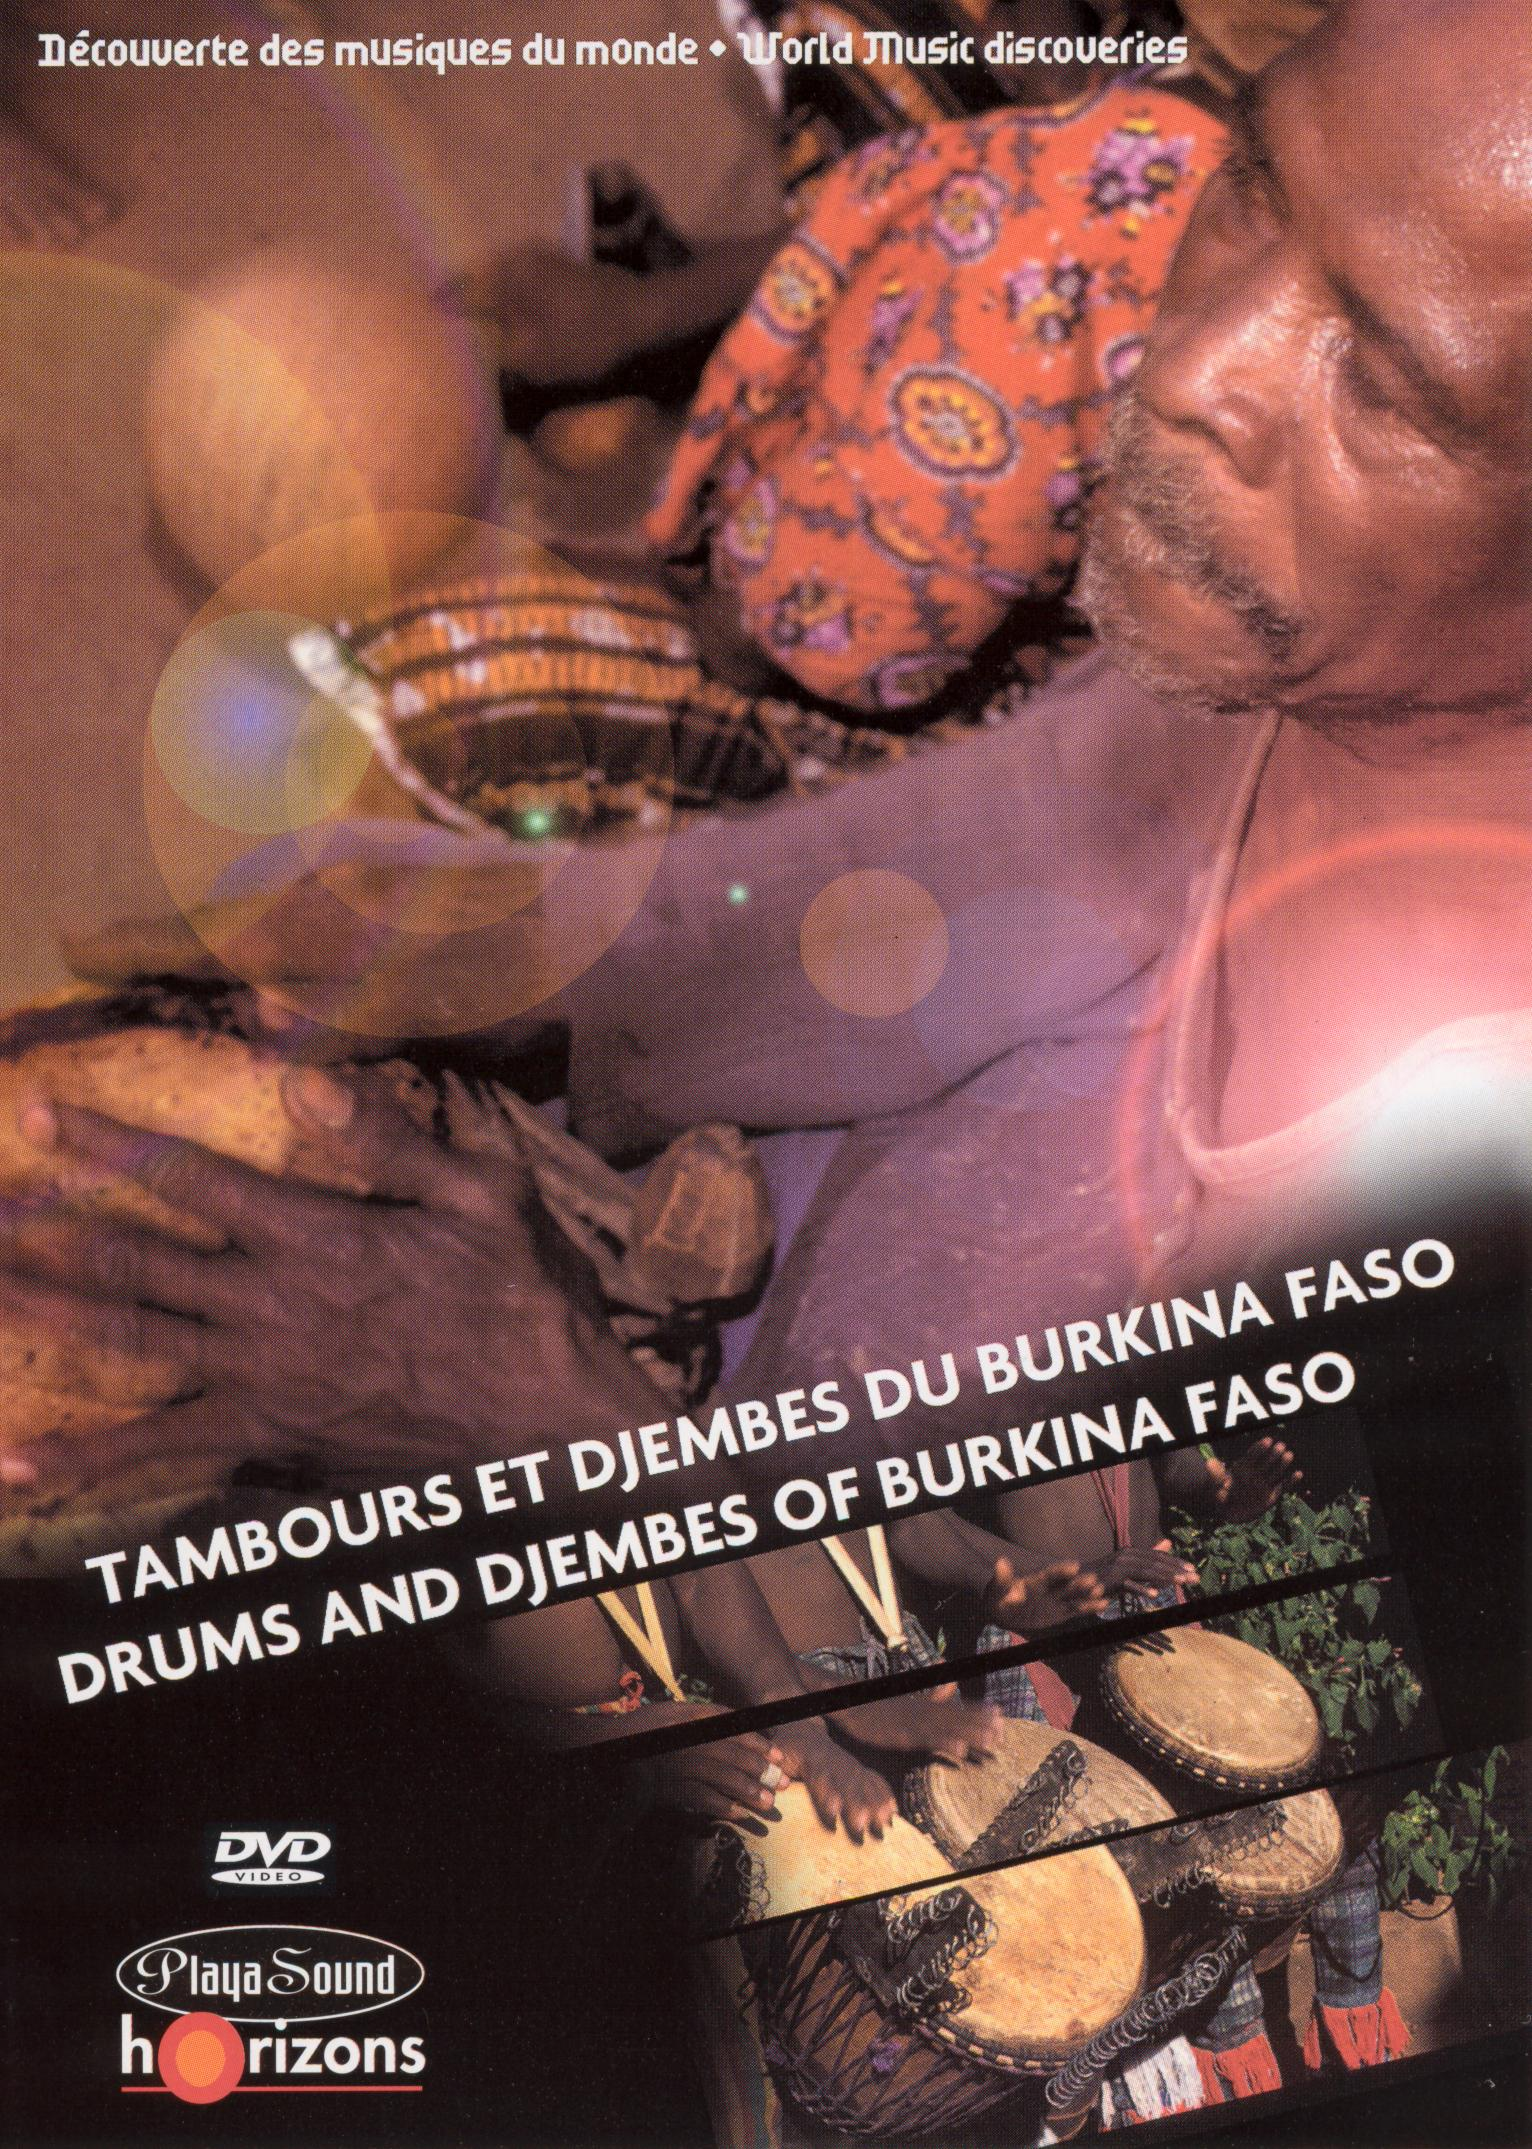 World Music Discoveries: Drums and Djembes of Burkino Faso (2003)